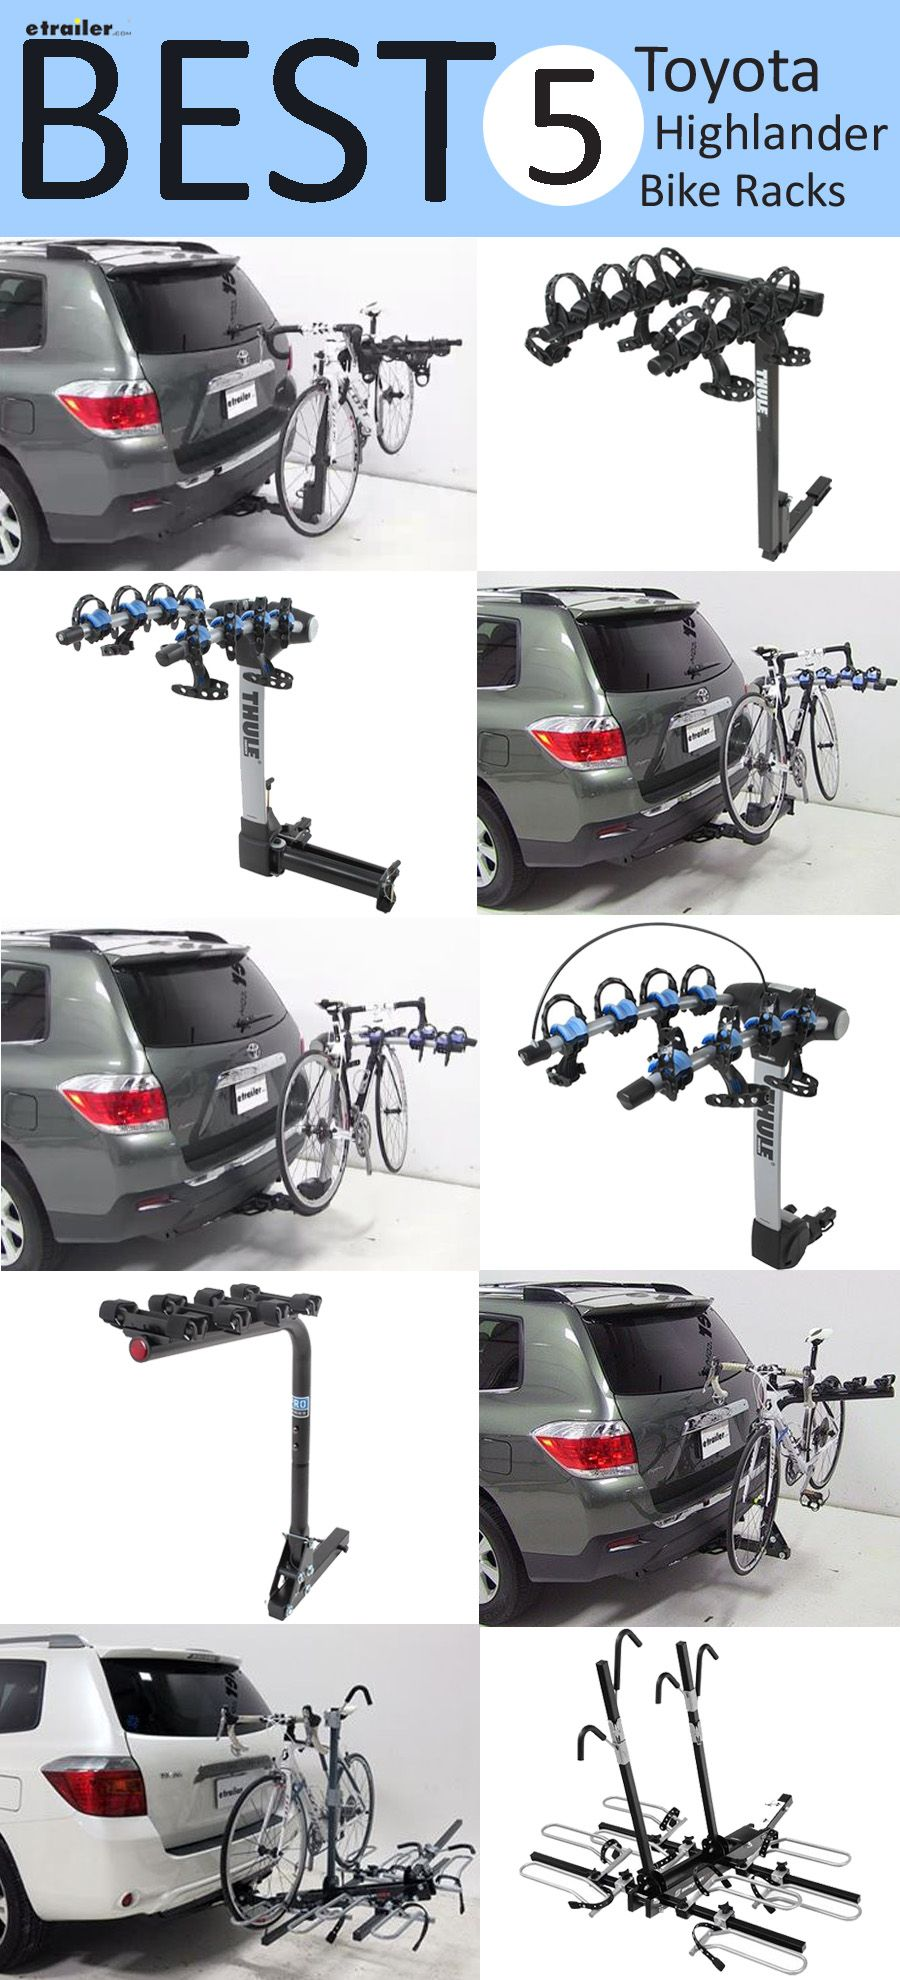 Best 5 Toyota Highlander Bike Racks Hitch Roof And Hatch